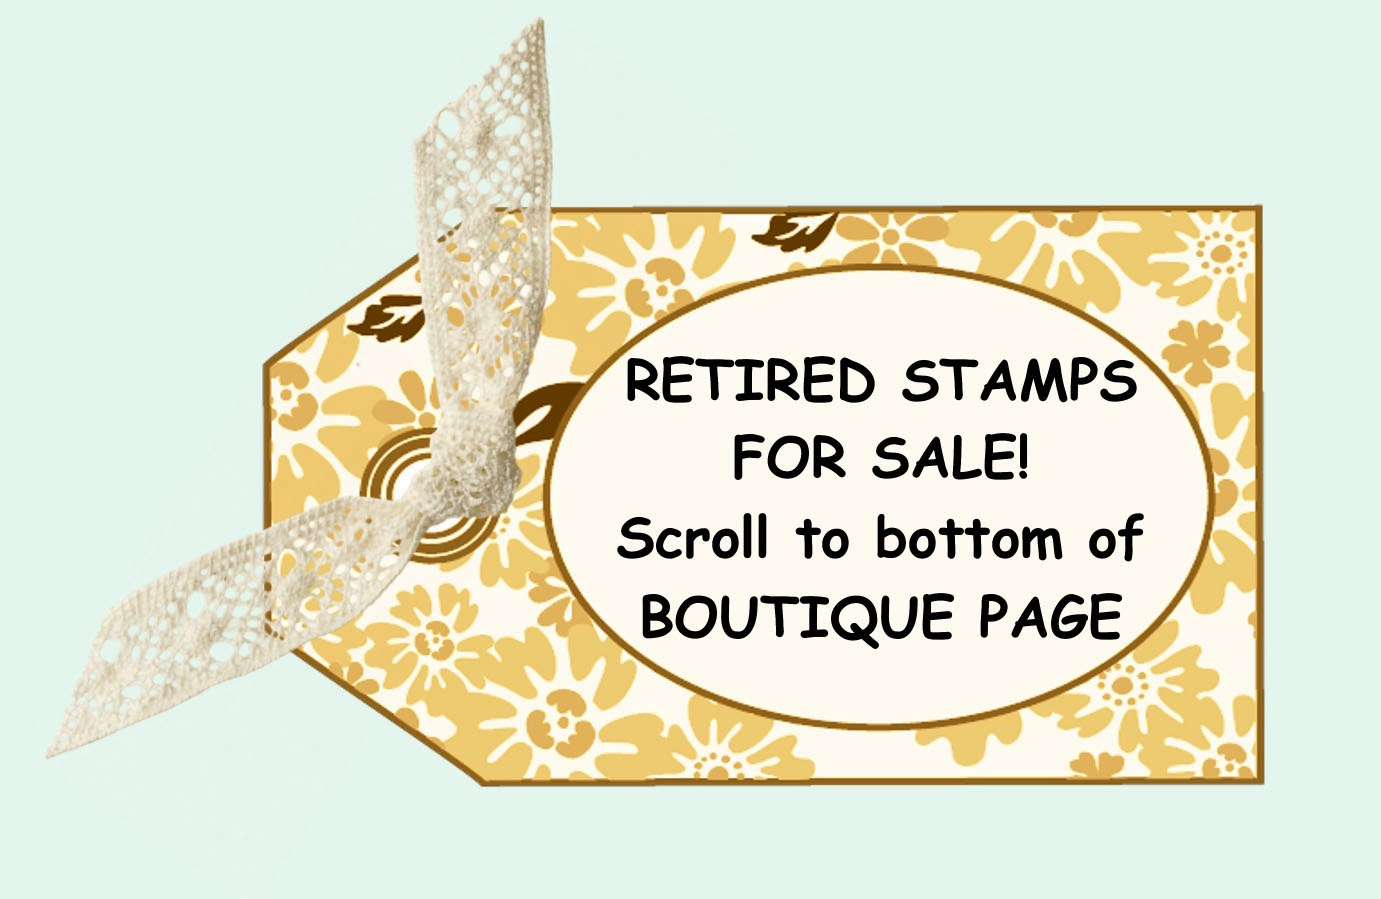 RETIRED STAMPS & MORE!